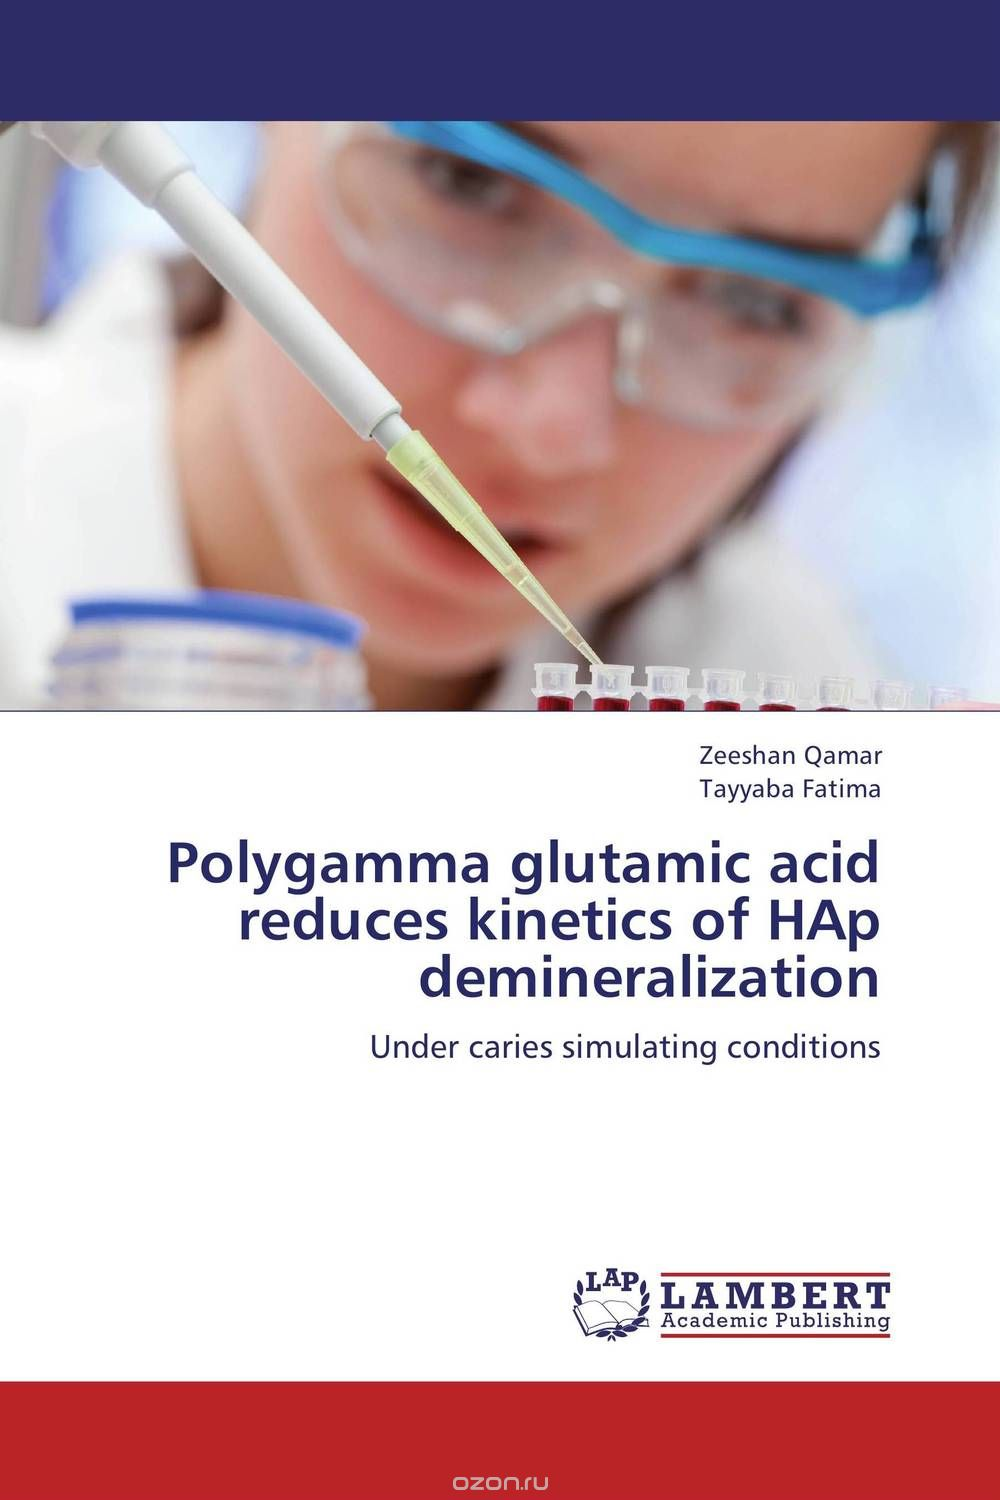 Polygamma glutamic acid reduces kinetics of HAp demineralization